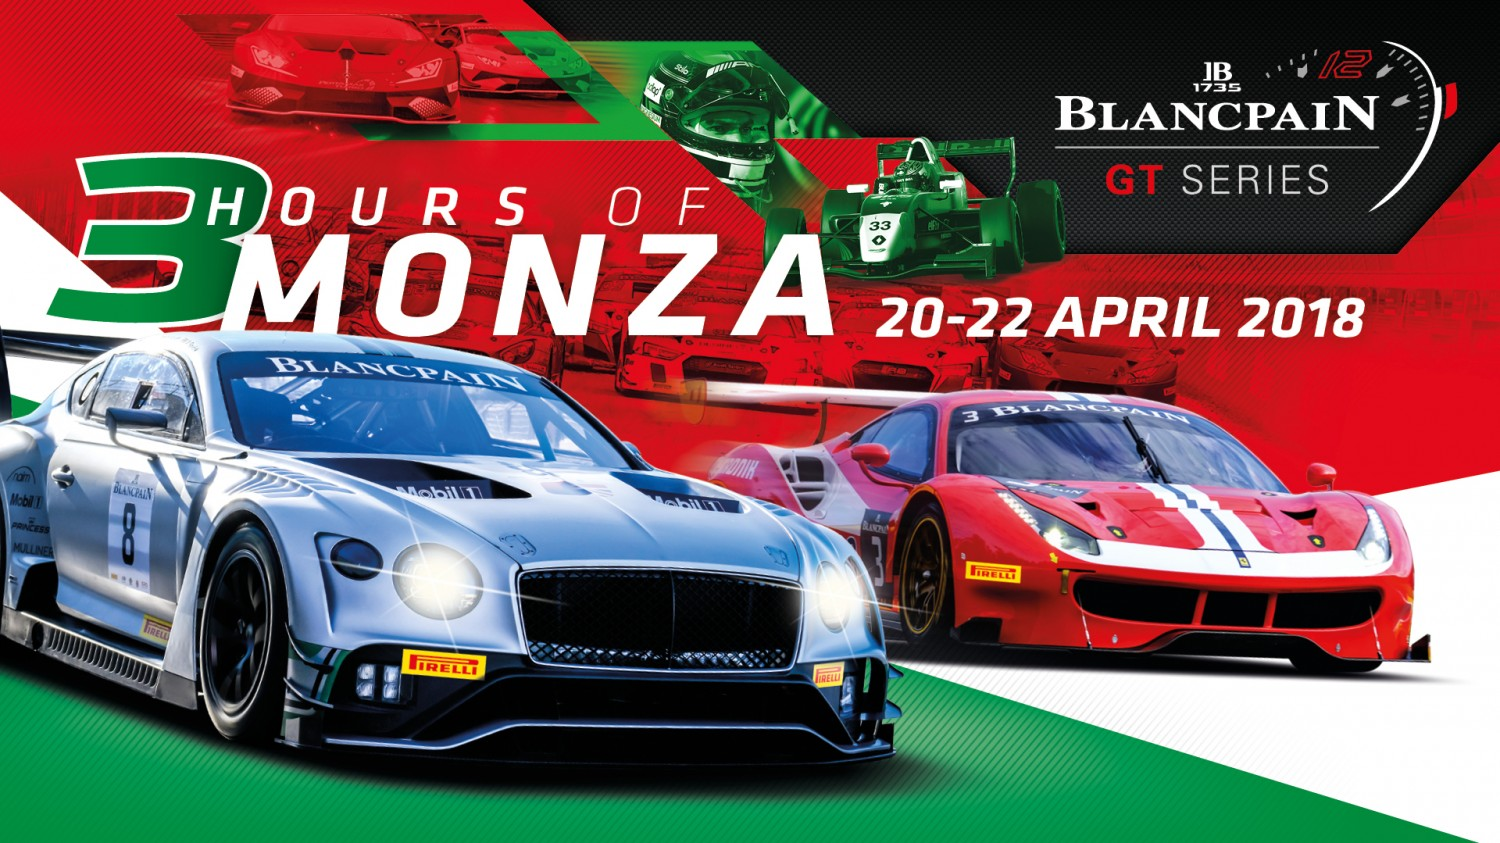 Impressive 54-car grid for Blancpain GT Series Endurance Cup opener at Monza